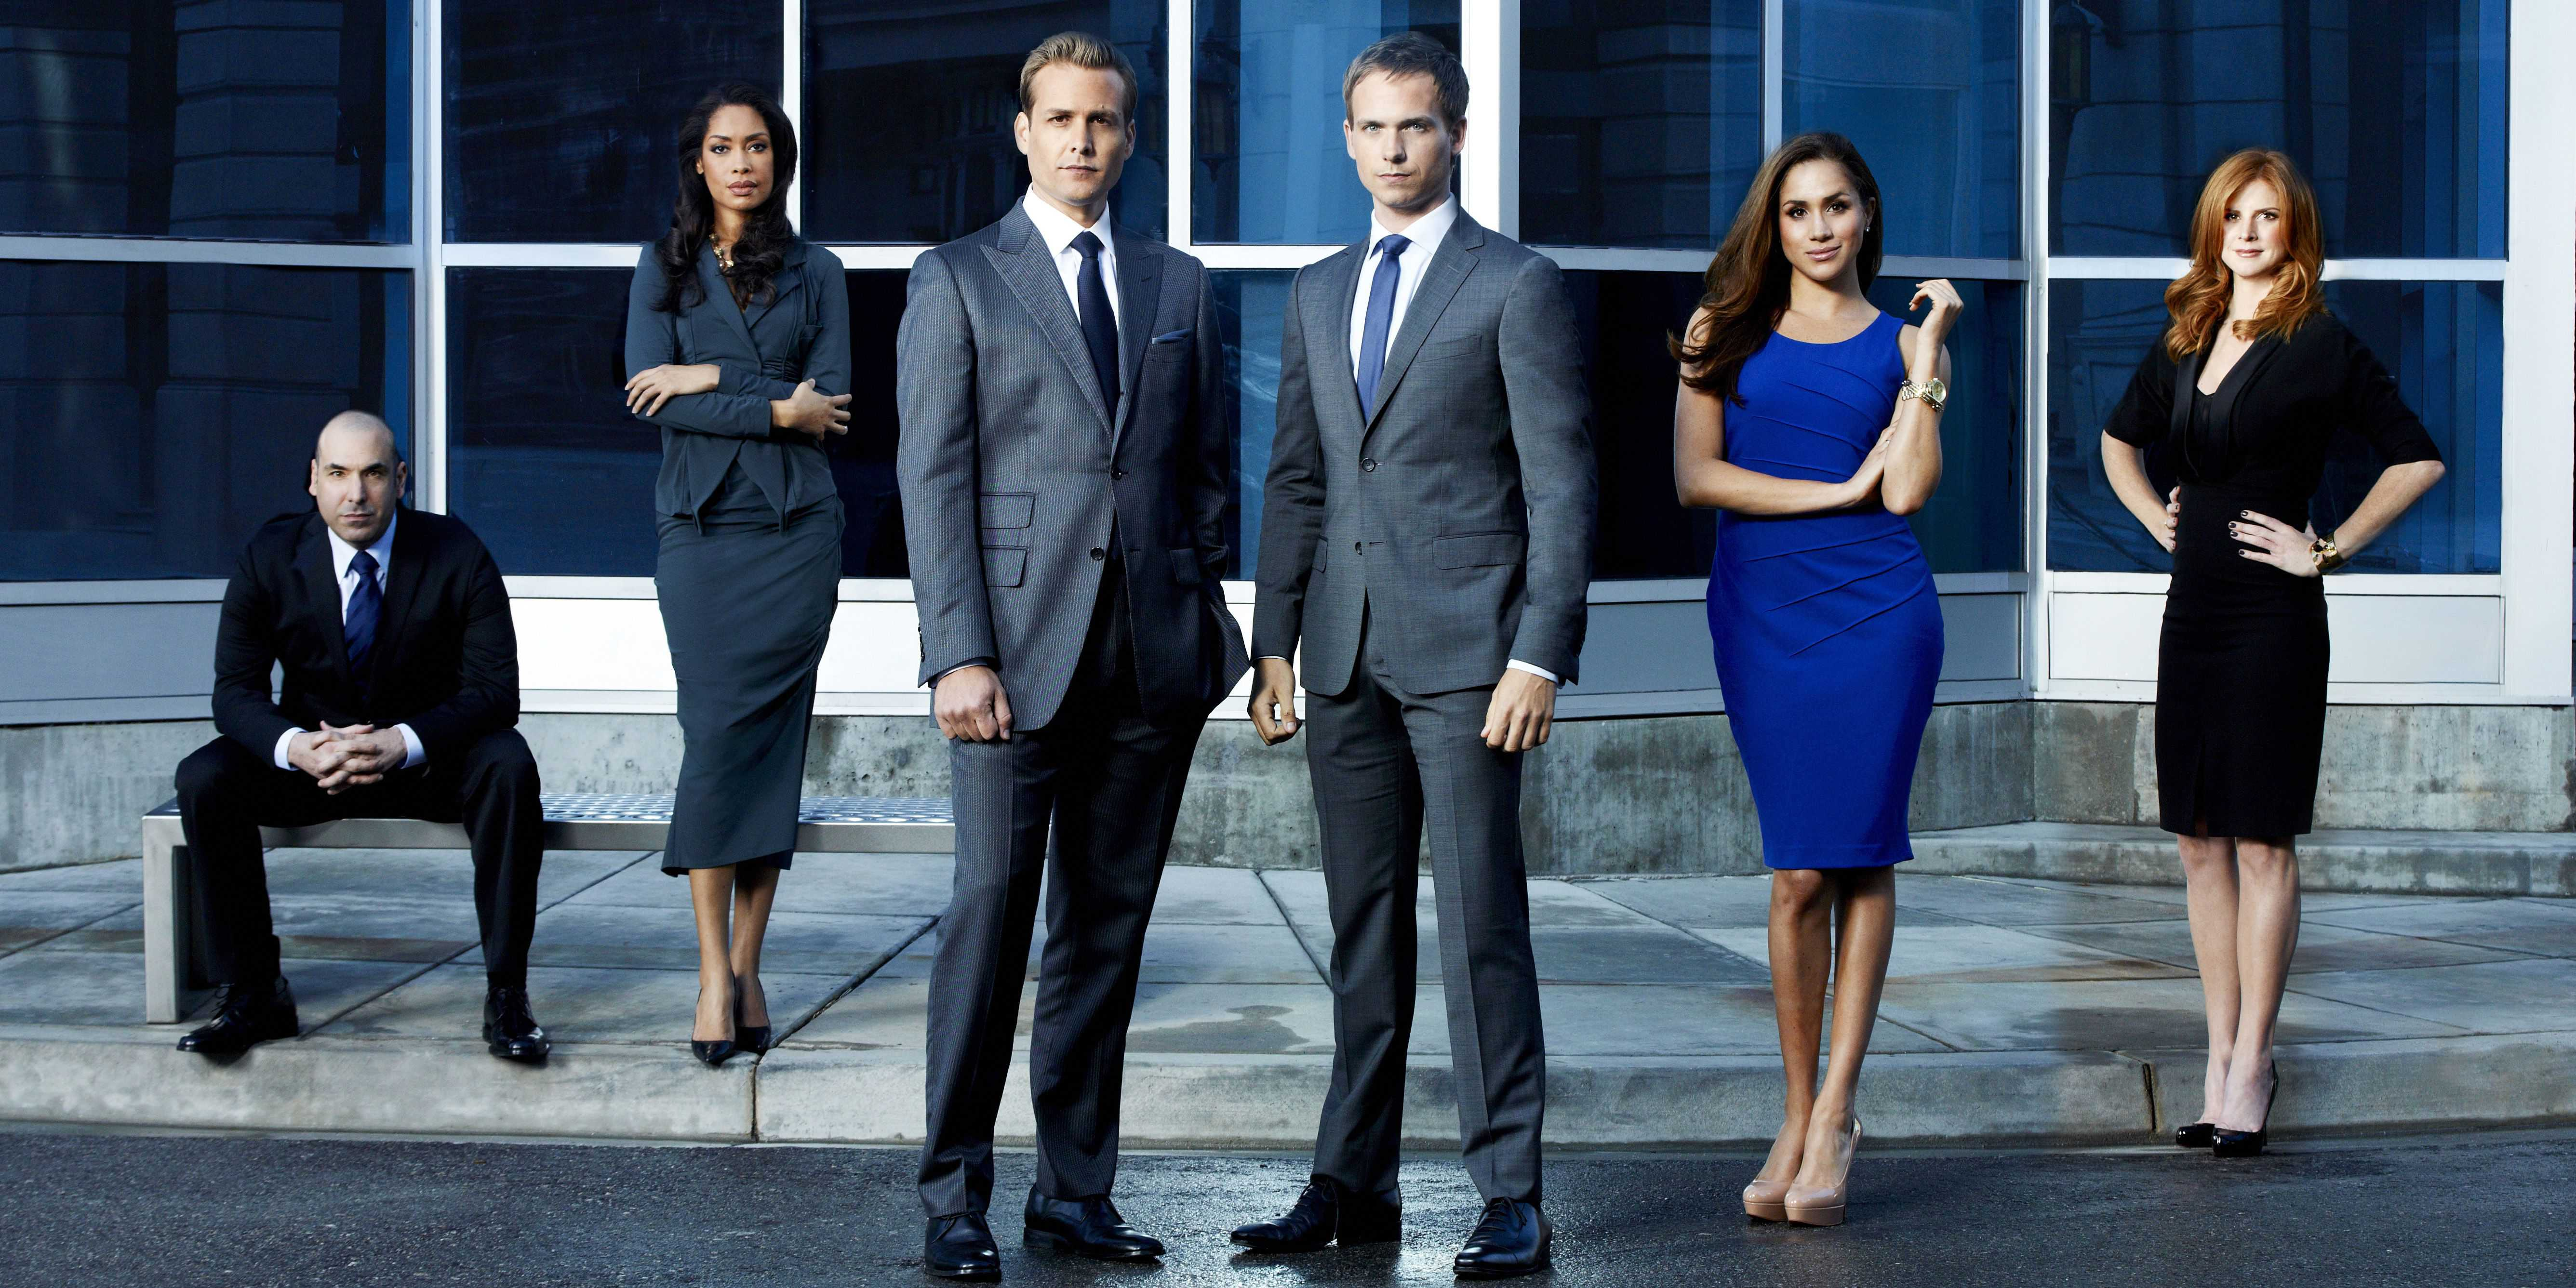 suits, harvey, donna, jessica, rachel, mike, Louis, dresses